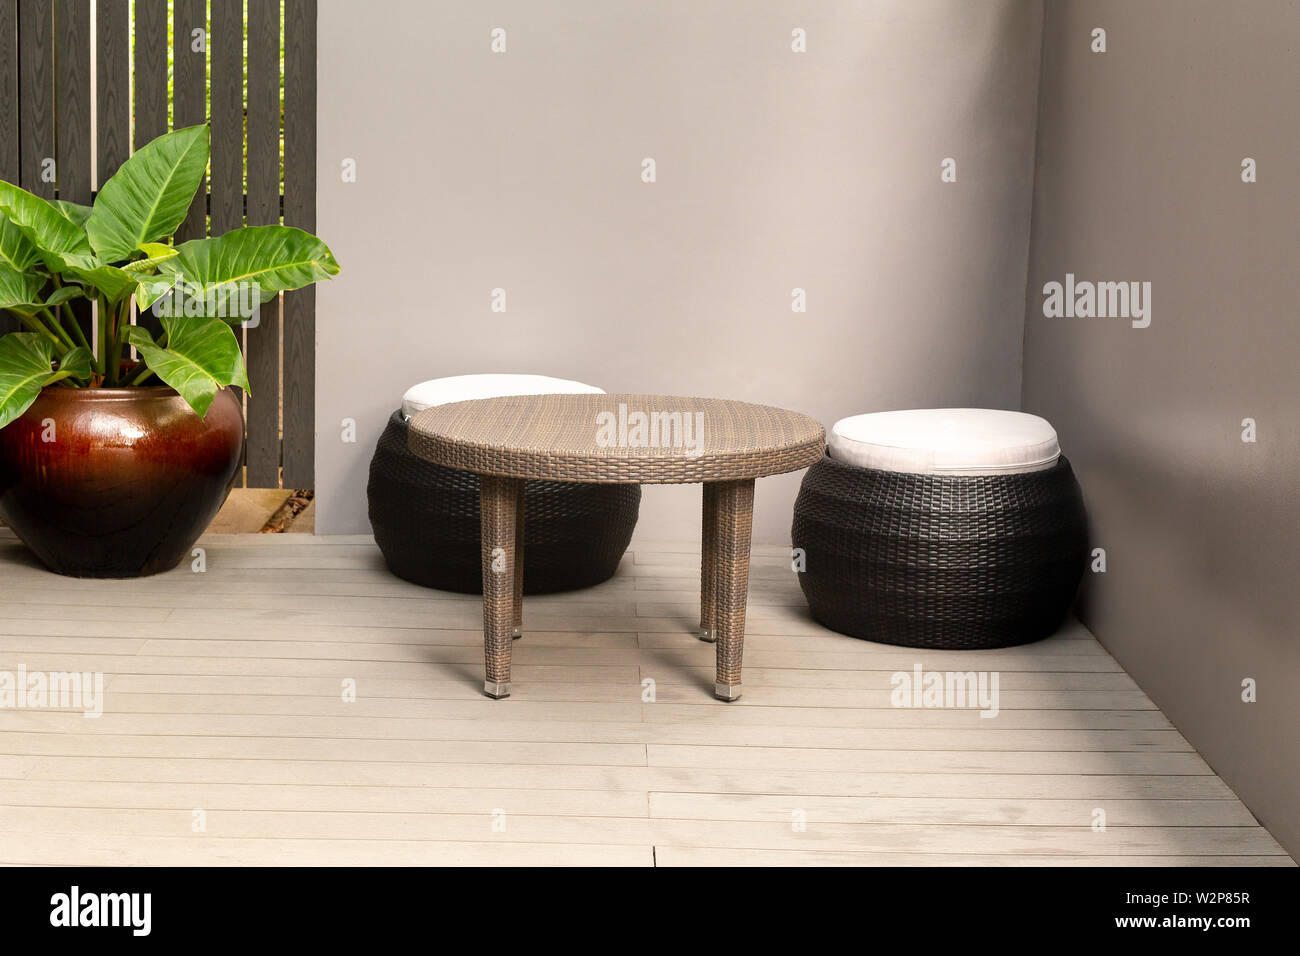 Rattan Corner Round Chair On Wooden Floor And Plant Outdoor Stock Photo Alamy